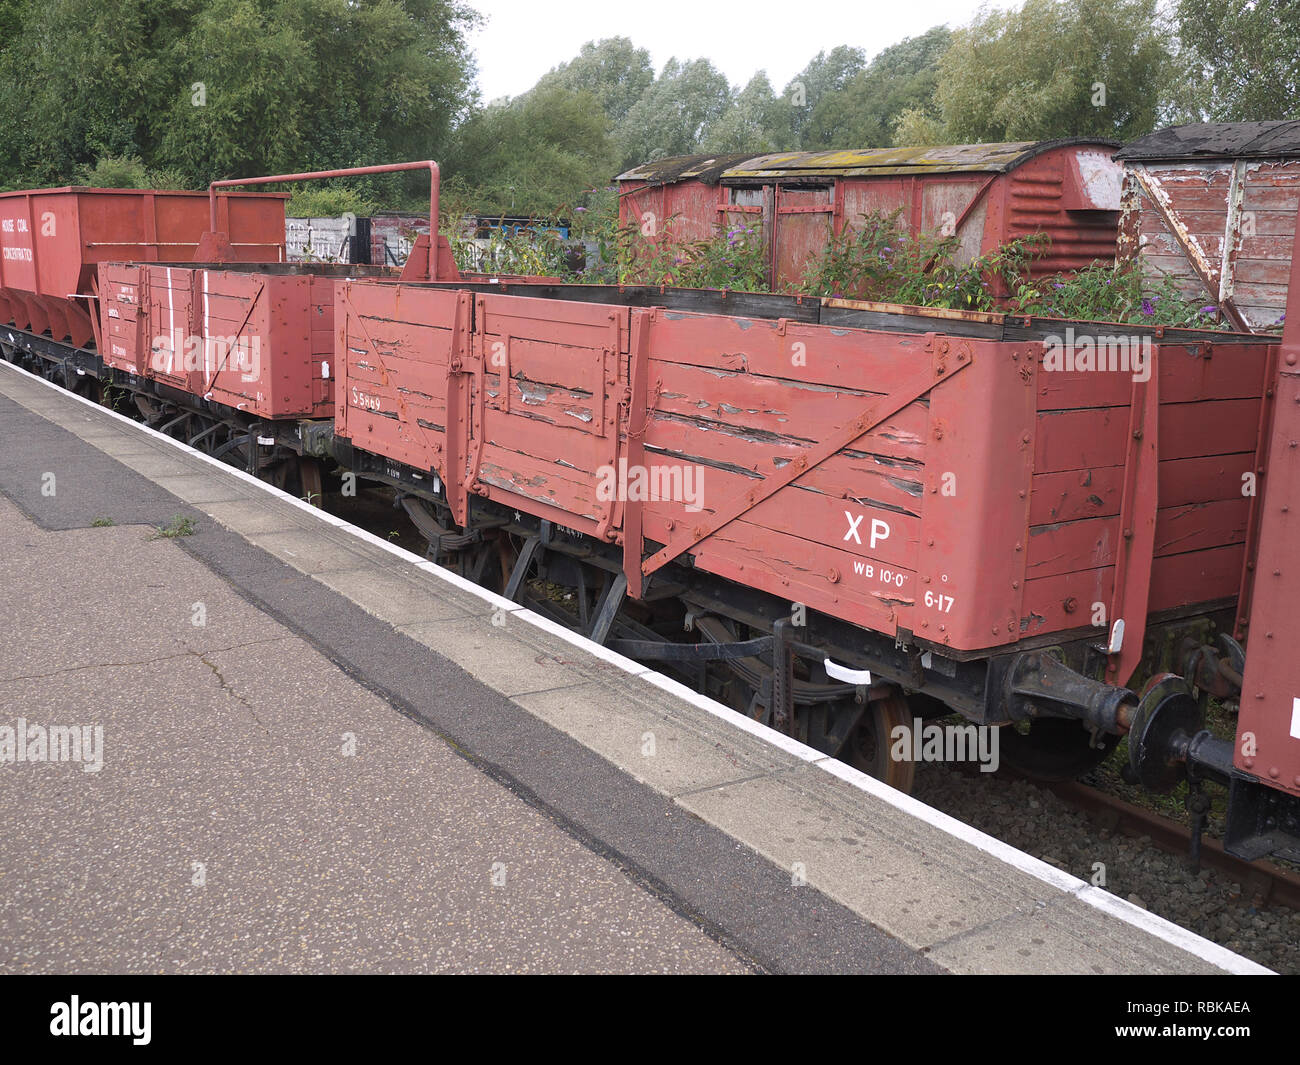 Goods wagons on display at the Nene Valley Railway - Stock Image